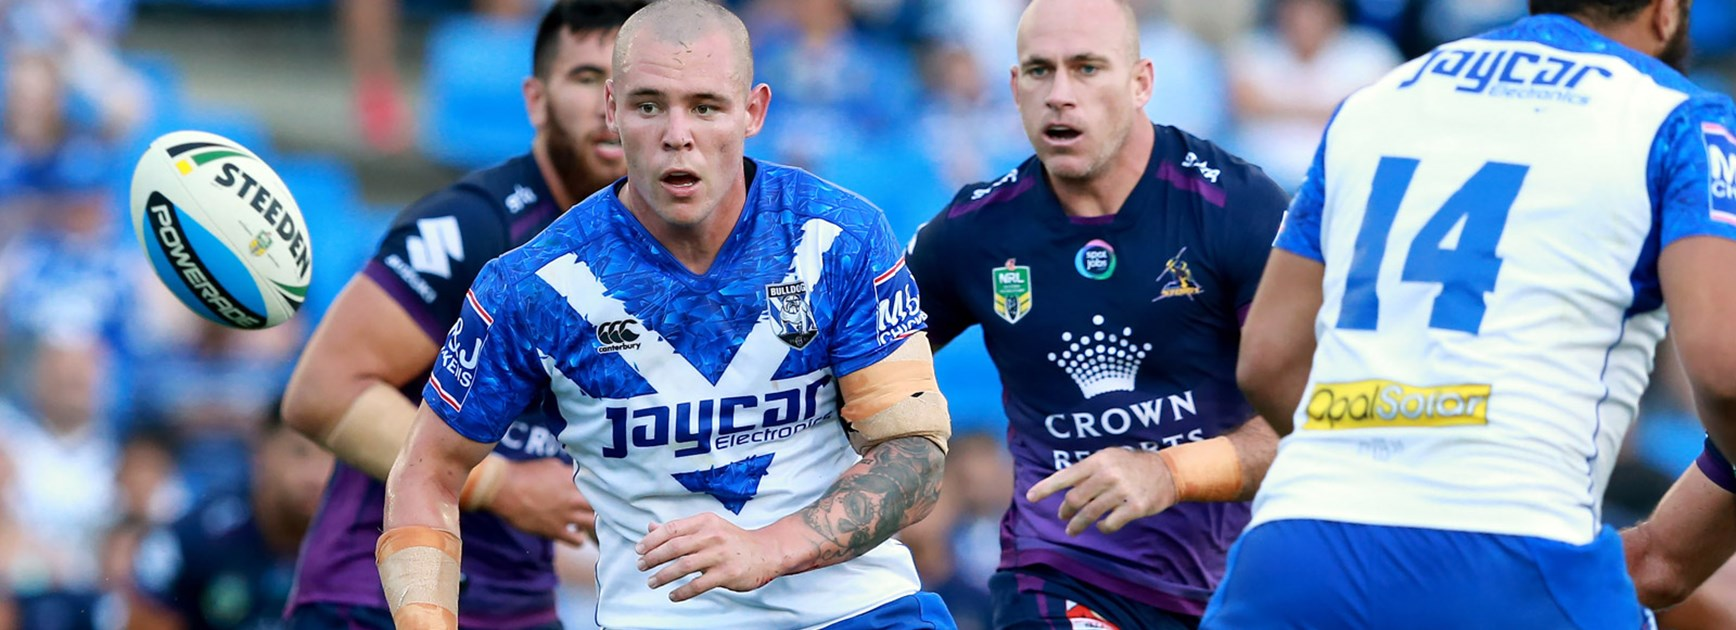 Bulldogs prop David Klemmer against the Storm in a pre-season trial.